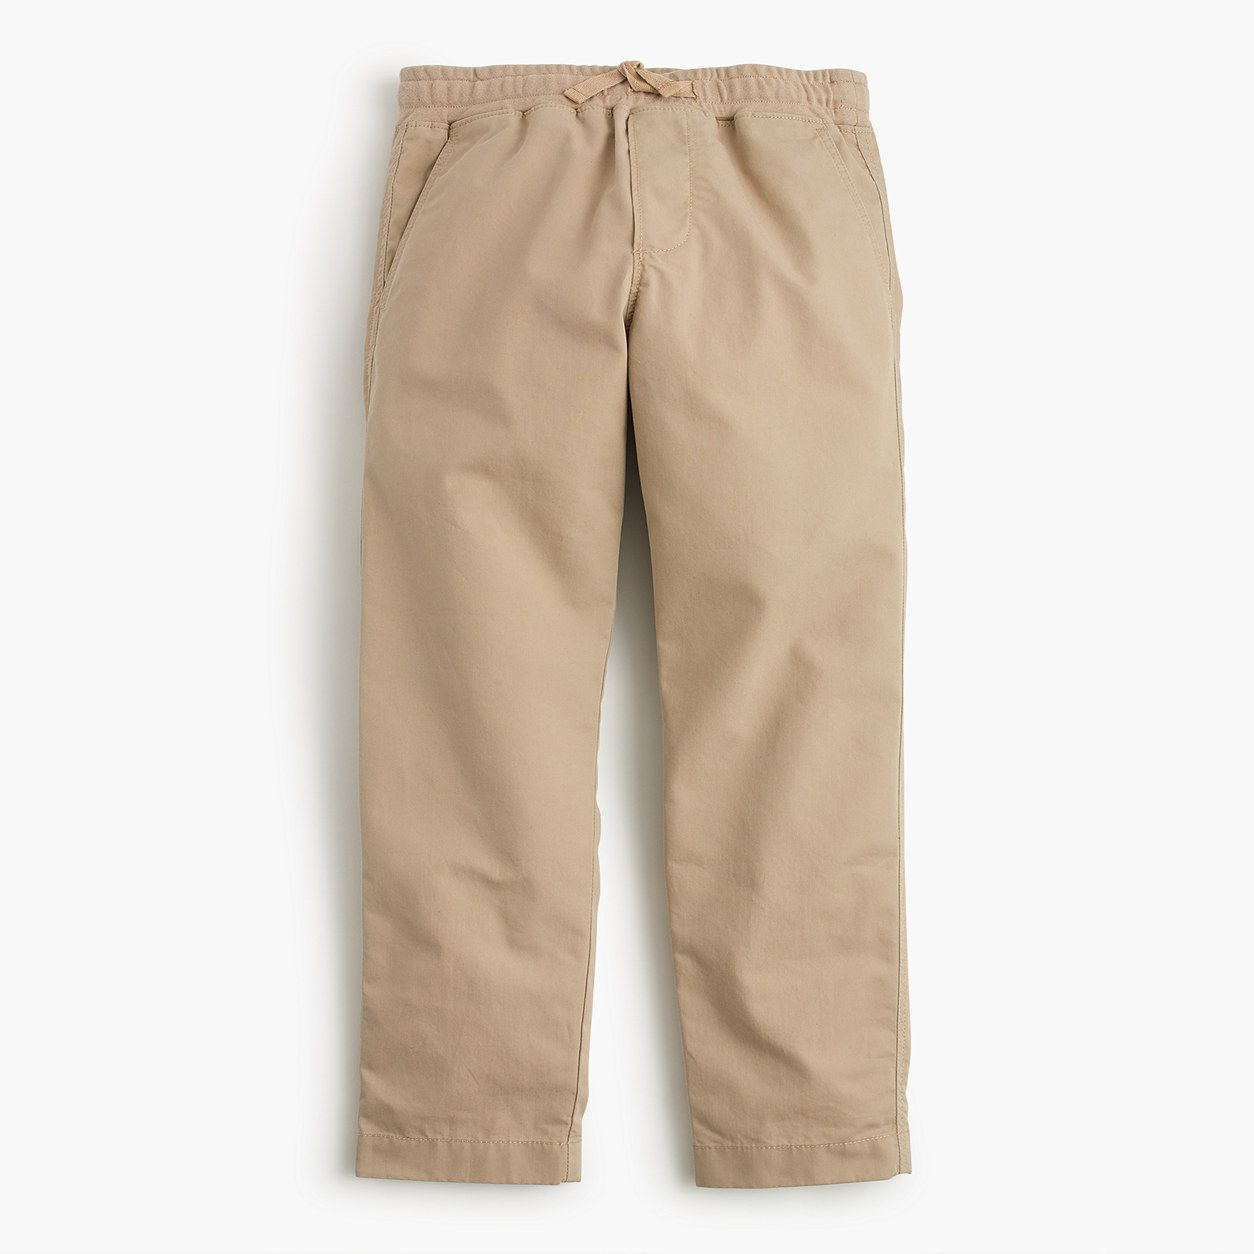 crewcuts Boys Lightweight Chino Pull-On Pant With Reinforced Knees (Size 10 Kid)